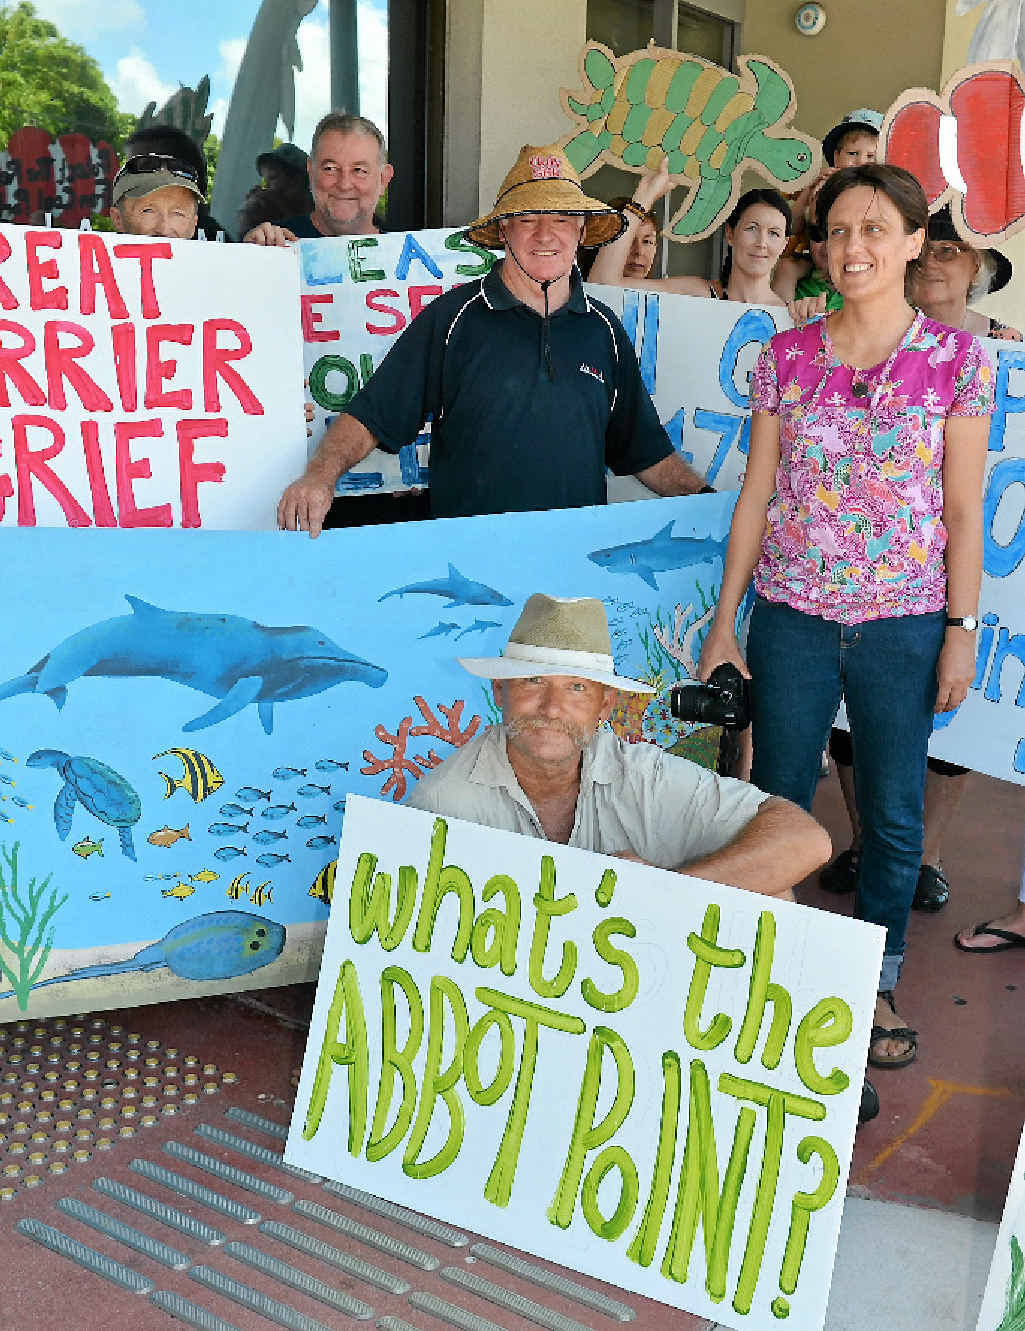 PASSIONATE DEFENCE: Ellen Roberts (right) with protestors Christopher Dunn (front) and Gordon Johnson protesting against plans to dump dredged material at Abbot Point.